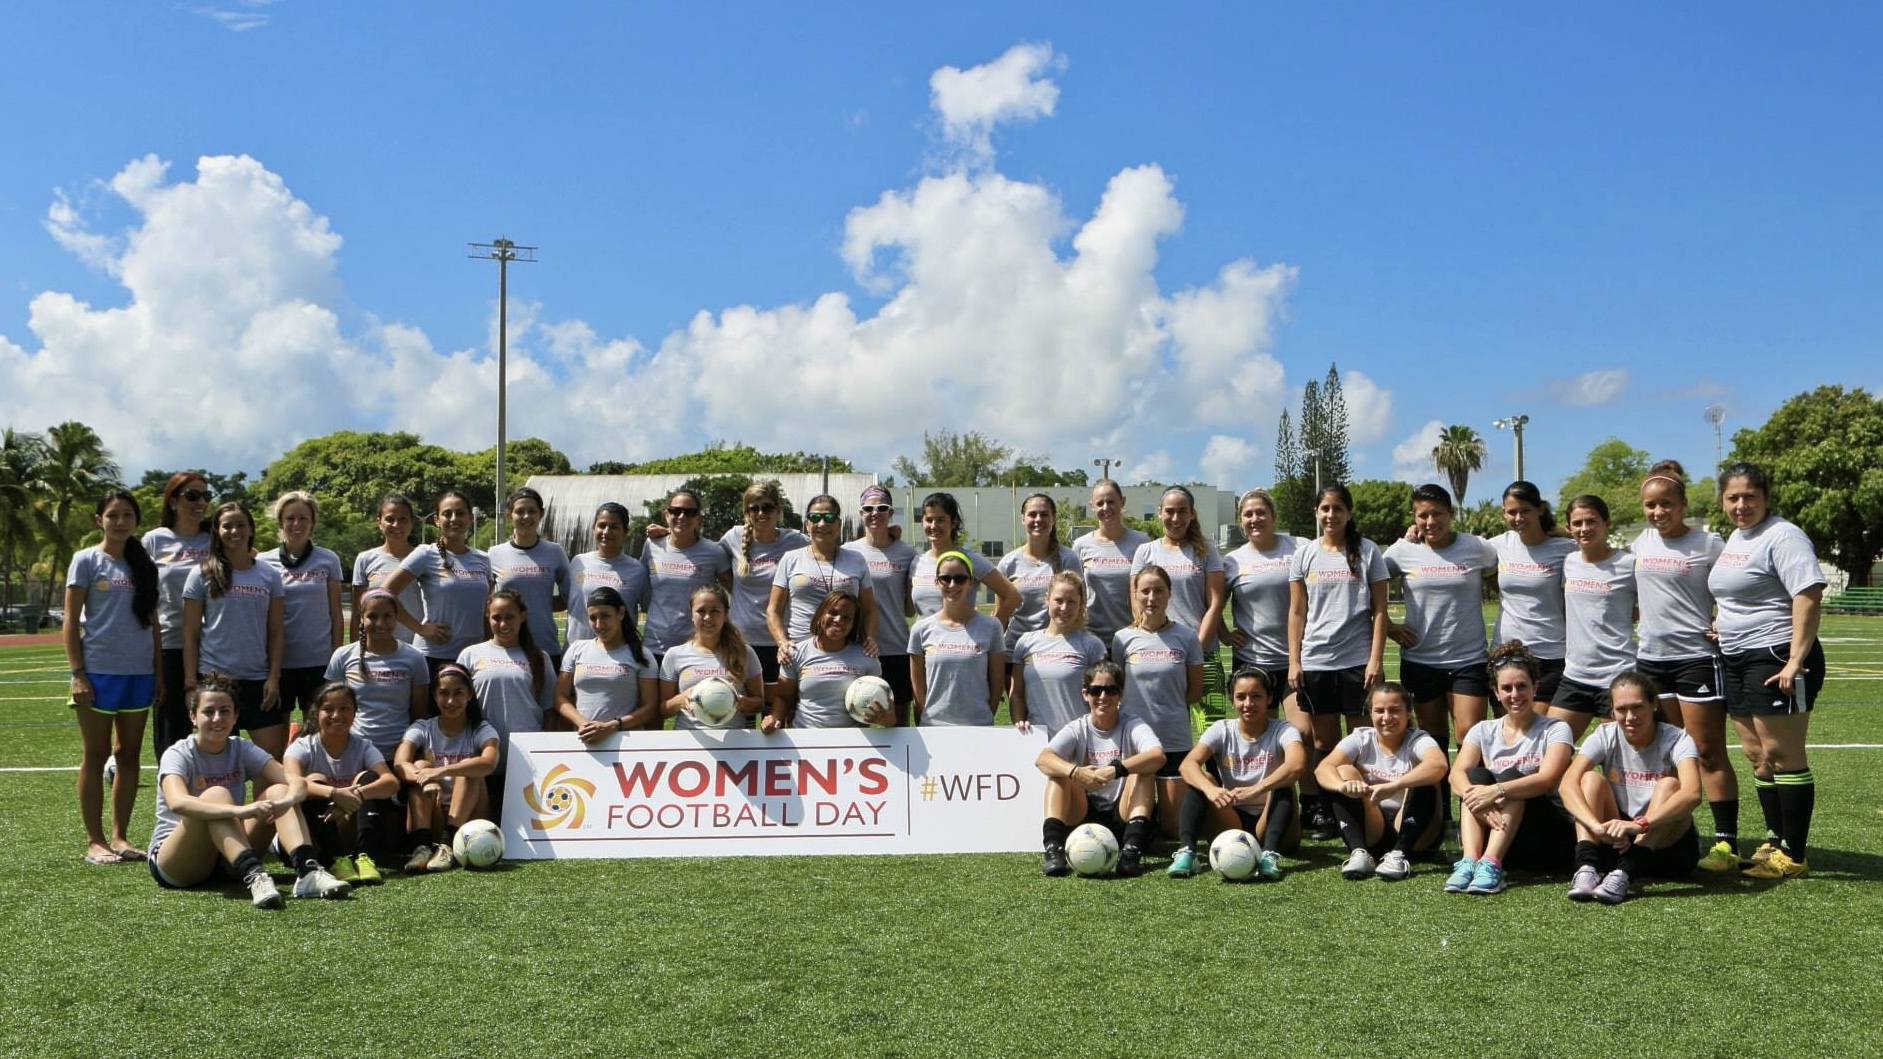 CONCACAF WOMEN'S FOOTBALL DAY